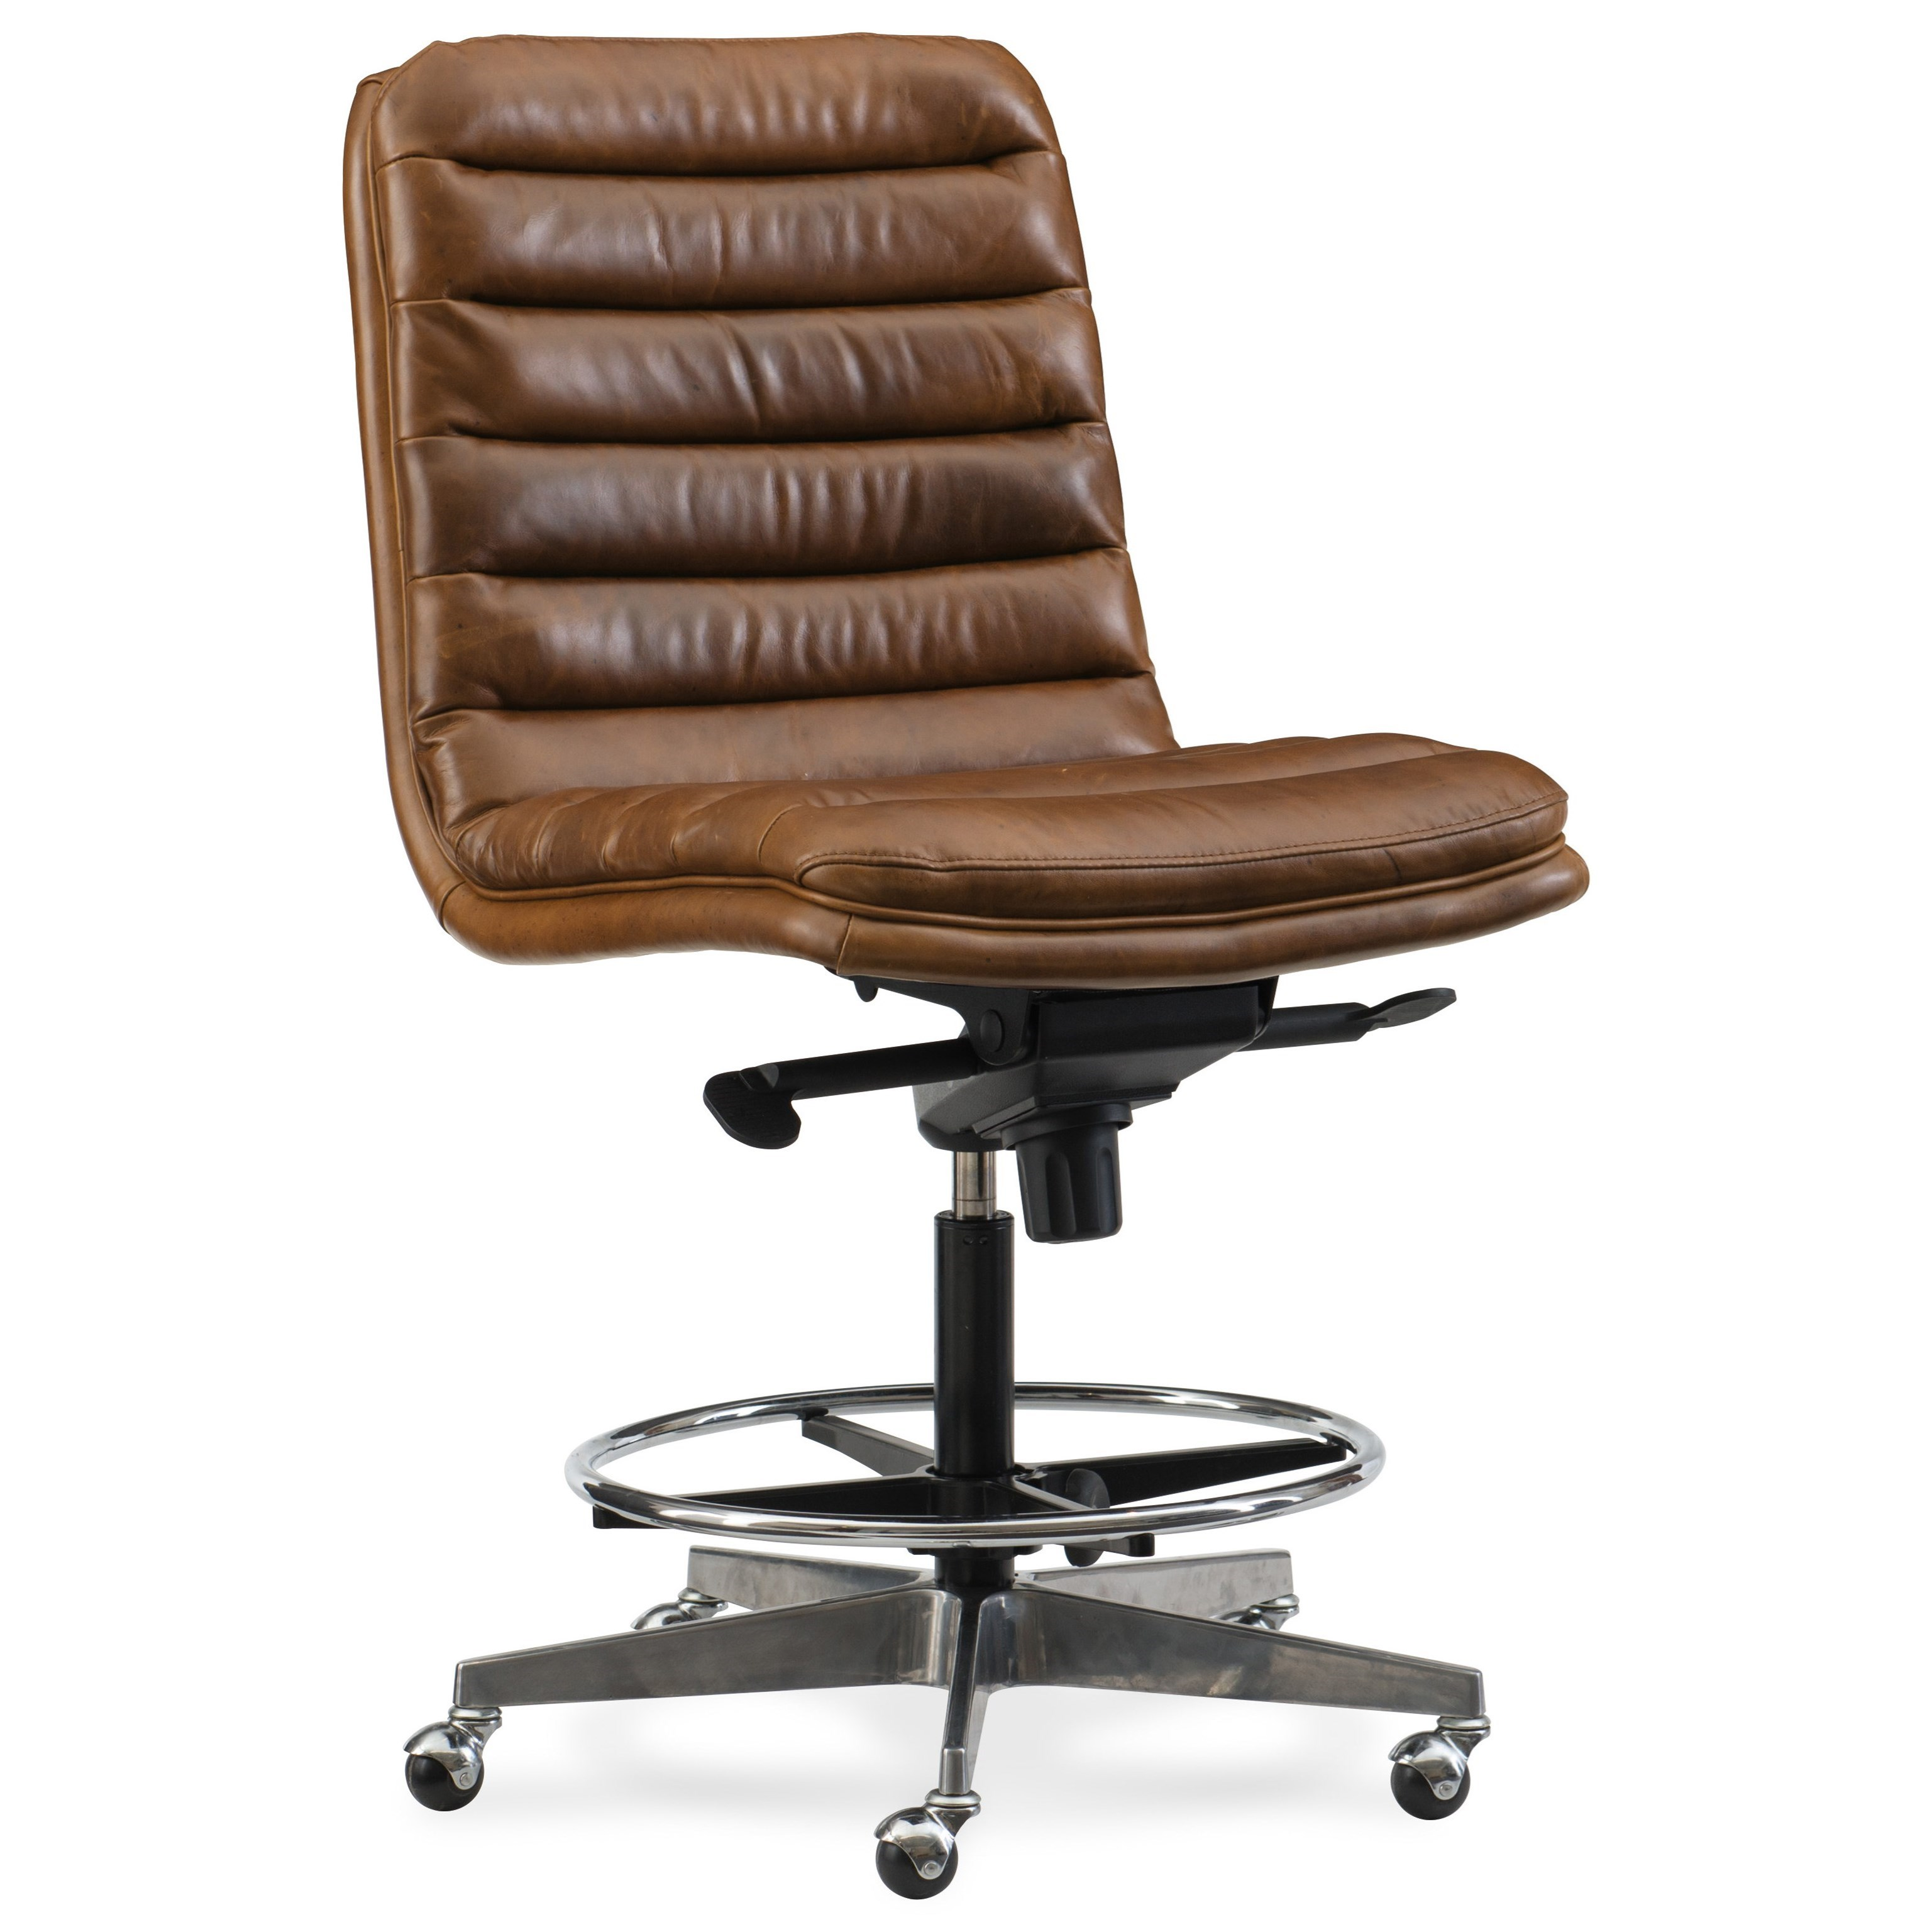 Tufted Leather Office Chair Executive Seating Wyatt Home Office Tall Desk Chair By Hooker Furniture At Olinde S Furniture